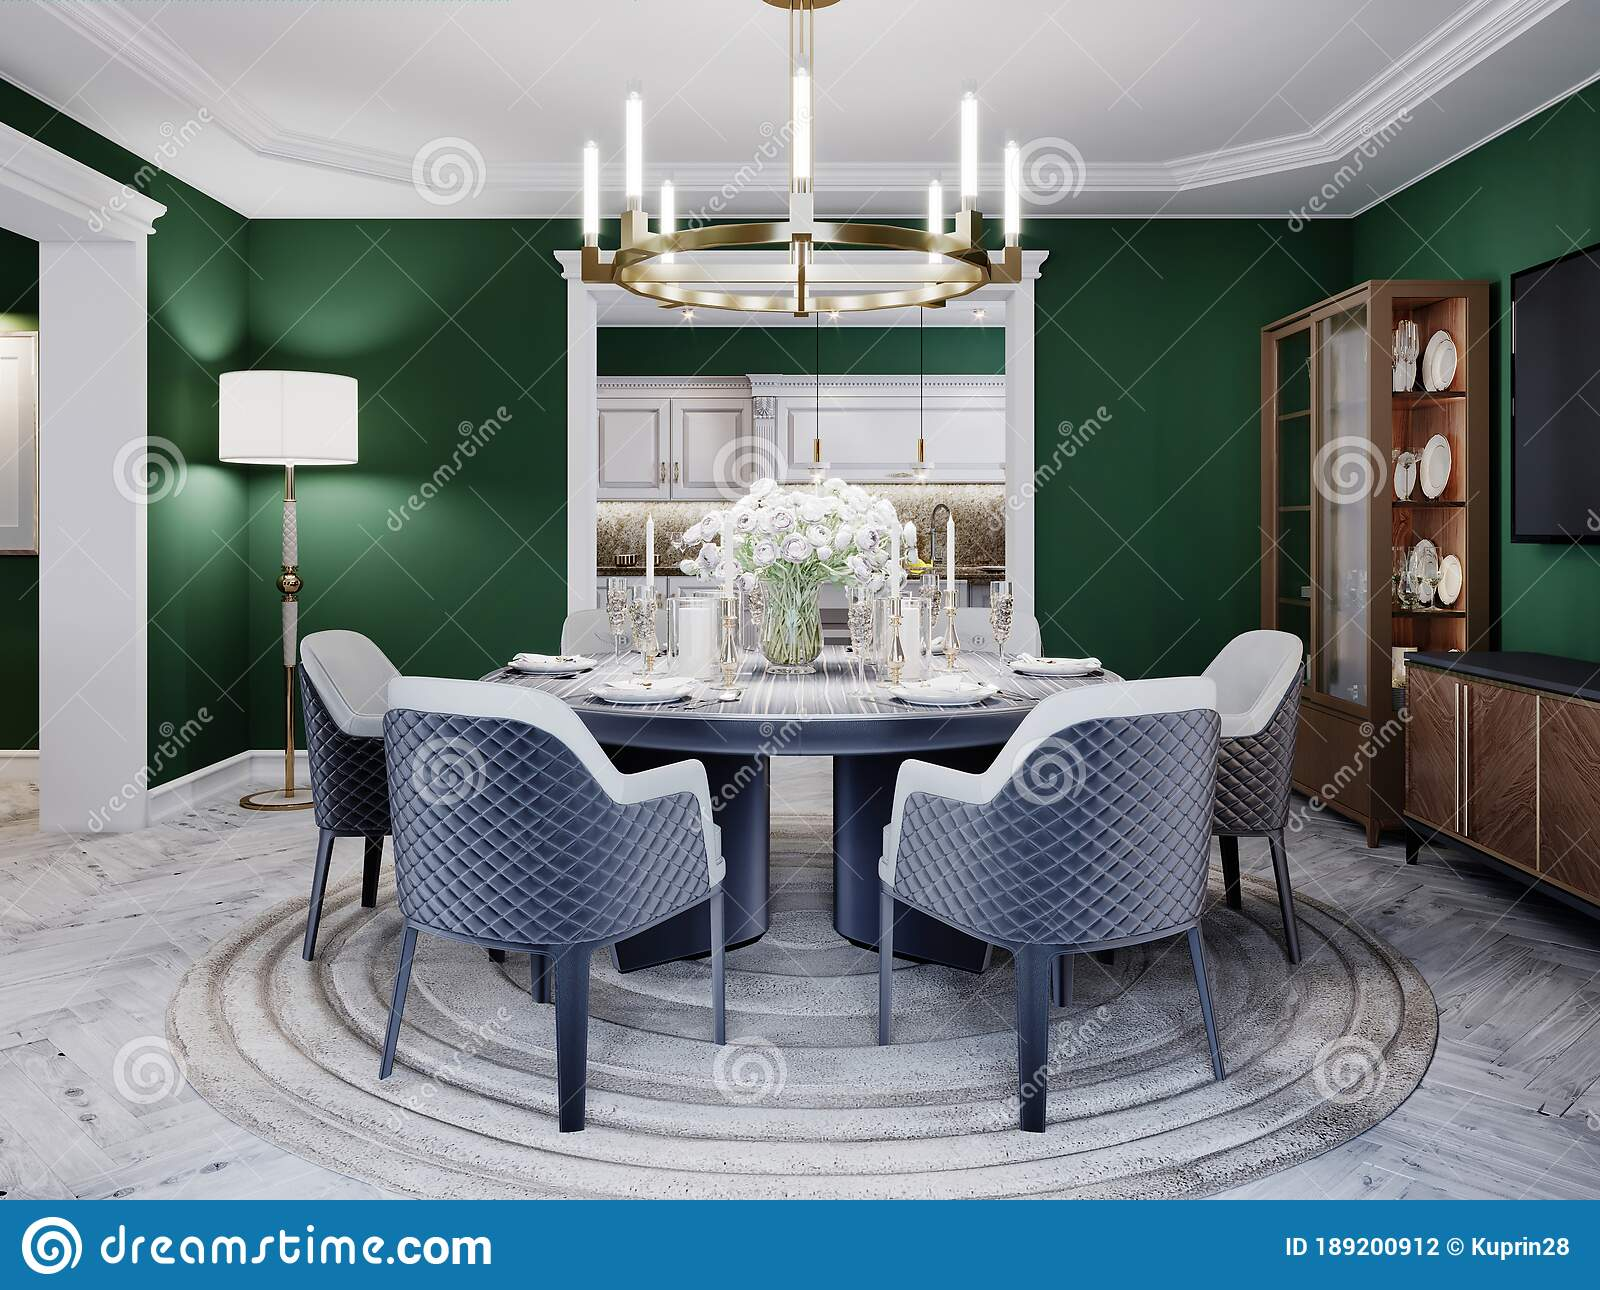 Luxurious Dining Room in a Large House, with a Round Table for Six ...